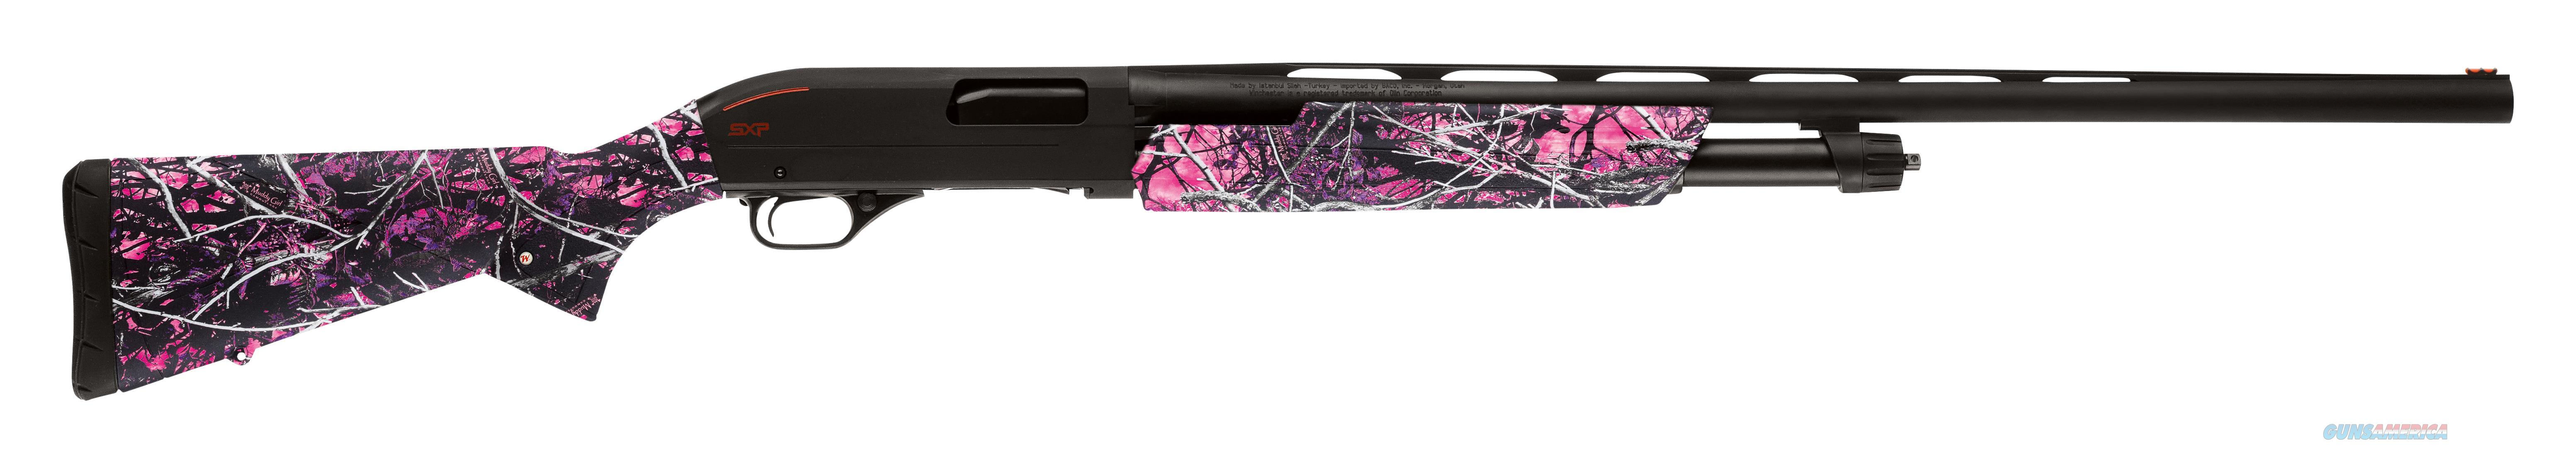 "Winchester Guns 512325692 Sxp Pump 20 Gauge 28"" 3"" Muddy Girl Syn Stk Black Aluminum Alloy Rcvr 512325692  Guns > Shotguns > W Misc Shotguns"